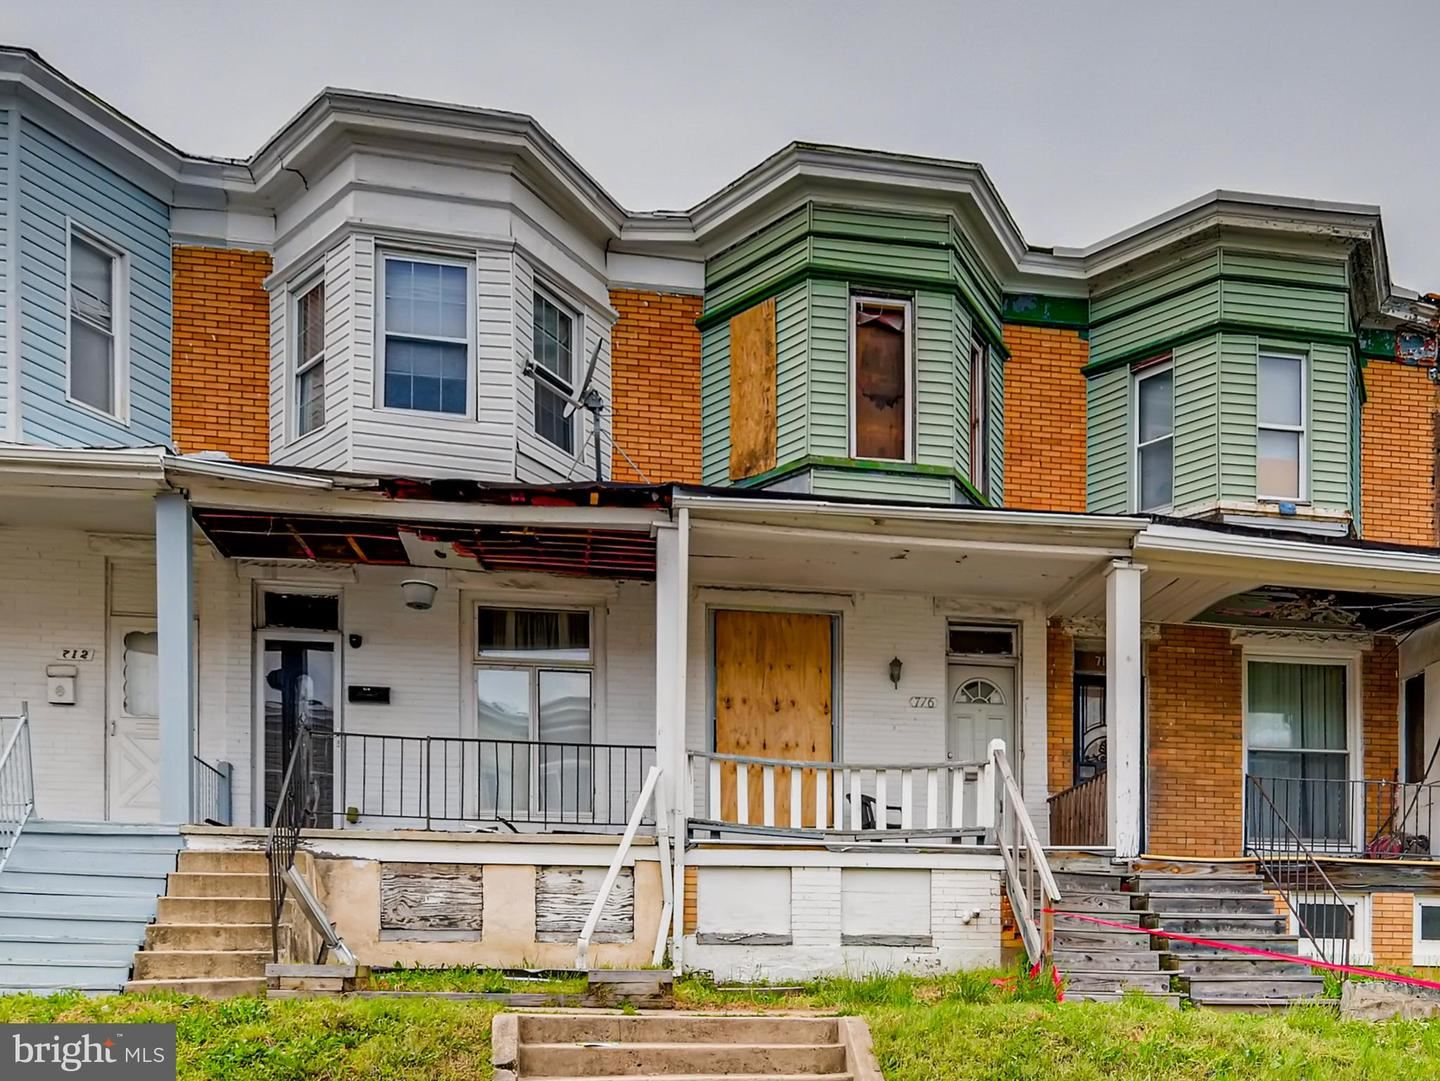 716 E 23RD ST, Baltimore, MD 21218 - MLS#: MDBA550808